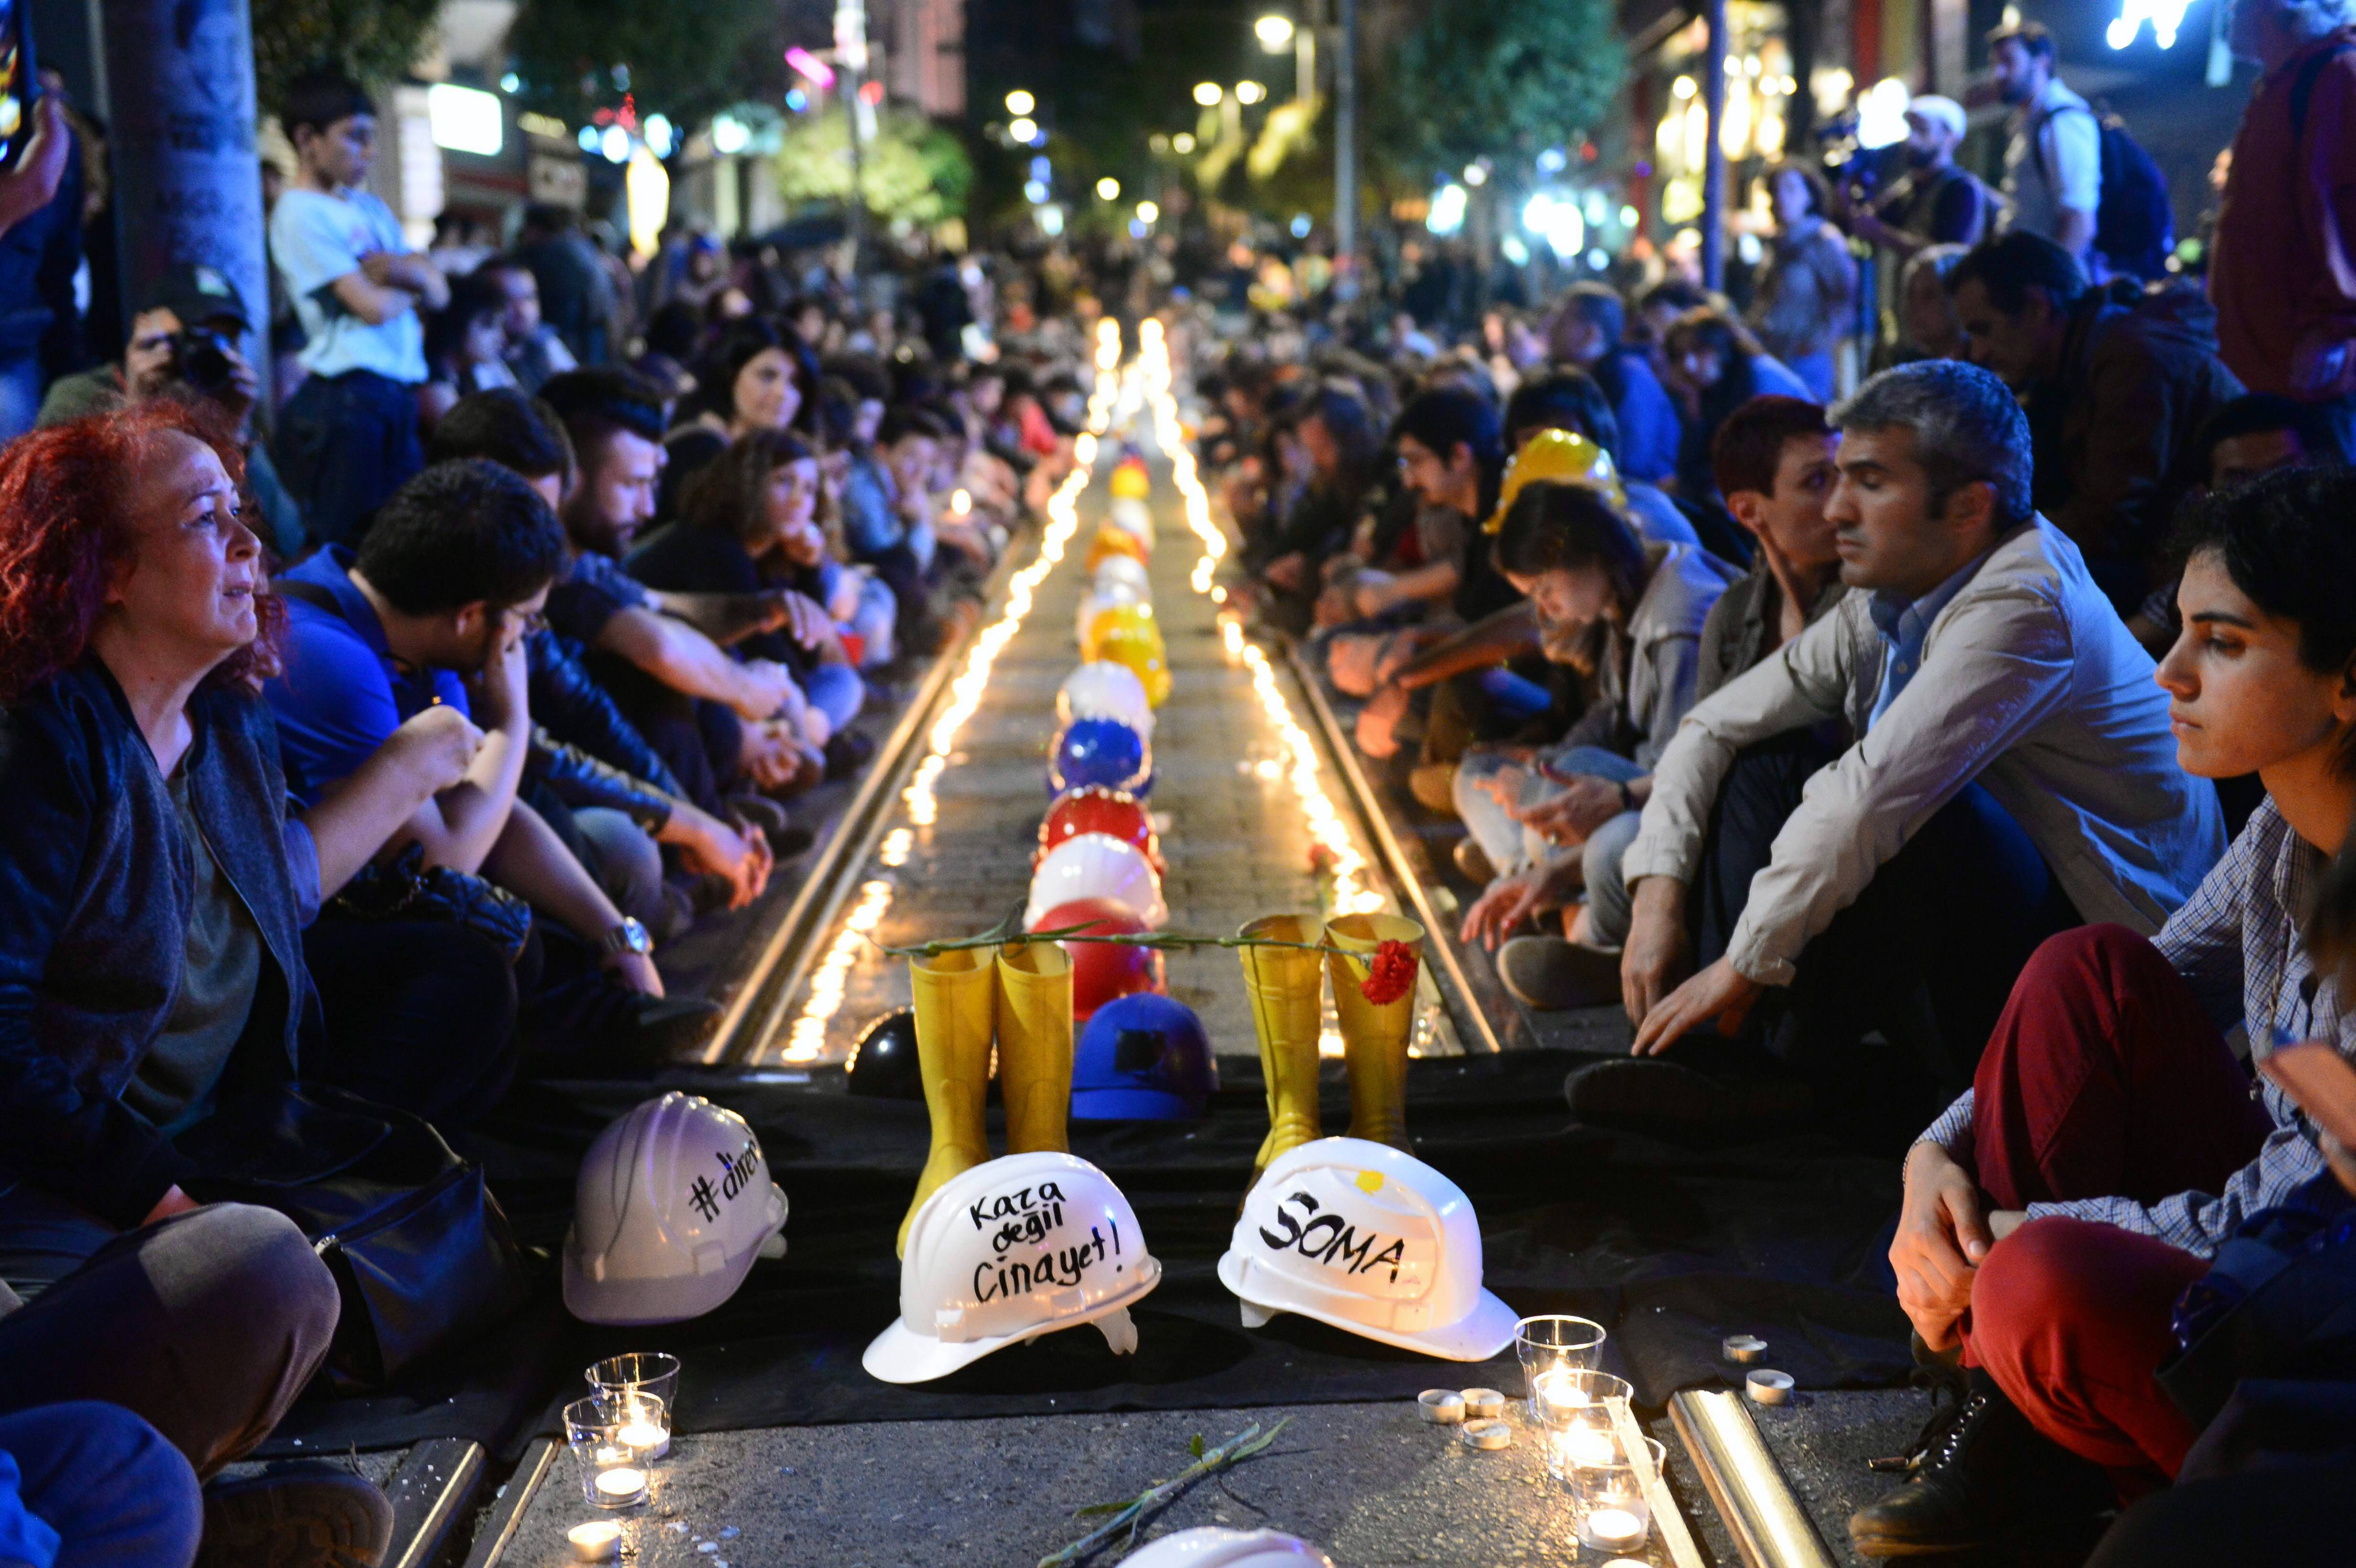 People gather late Friday to commemorate the Soma mine accident victims and protest the government's labor policy in Kadikoy, Istanbul, Turkey.